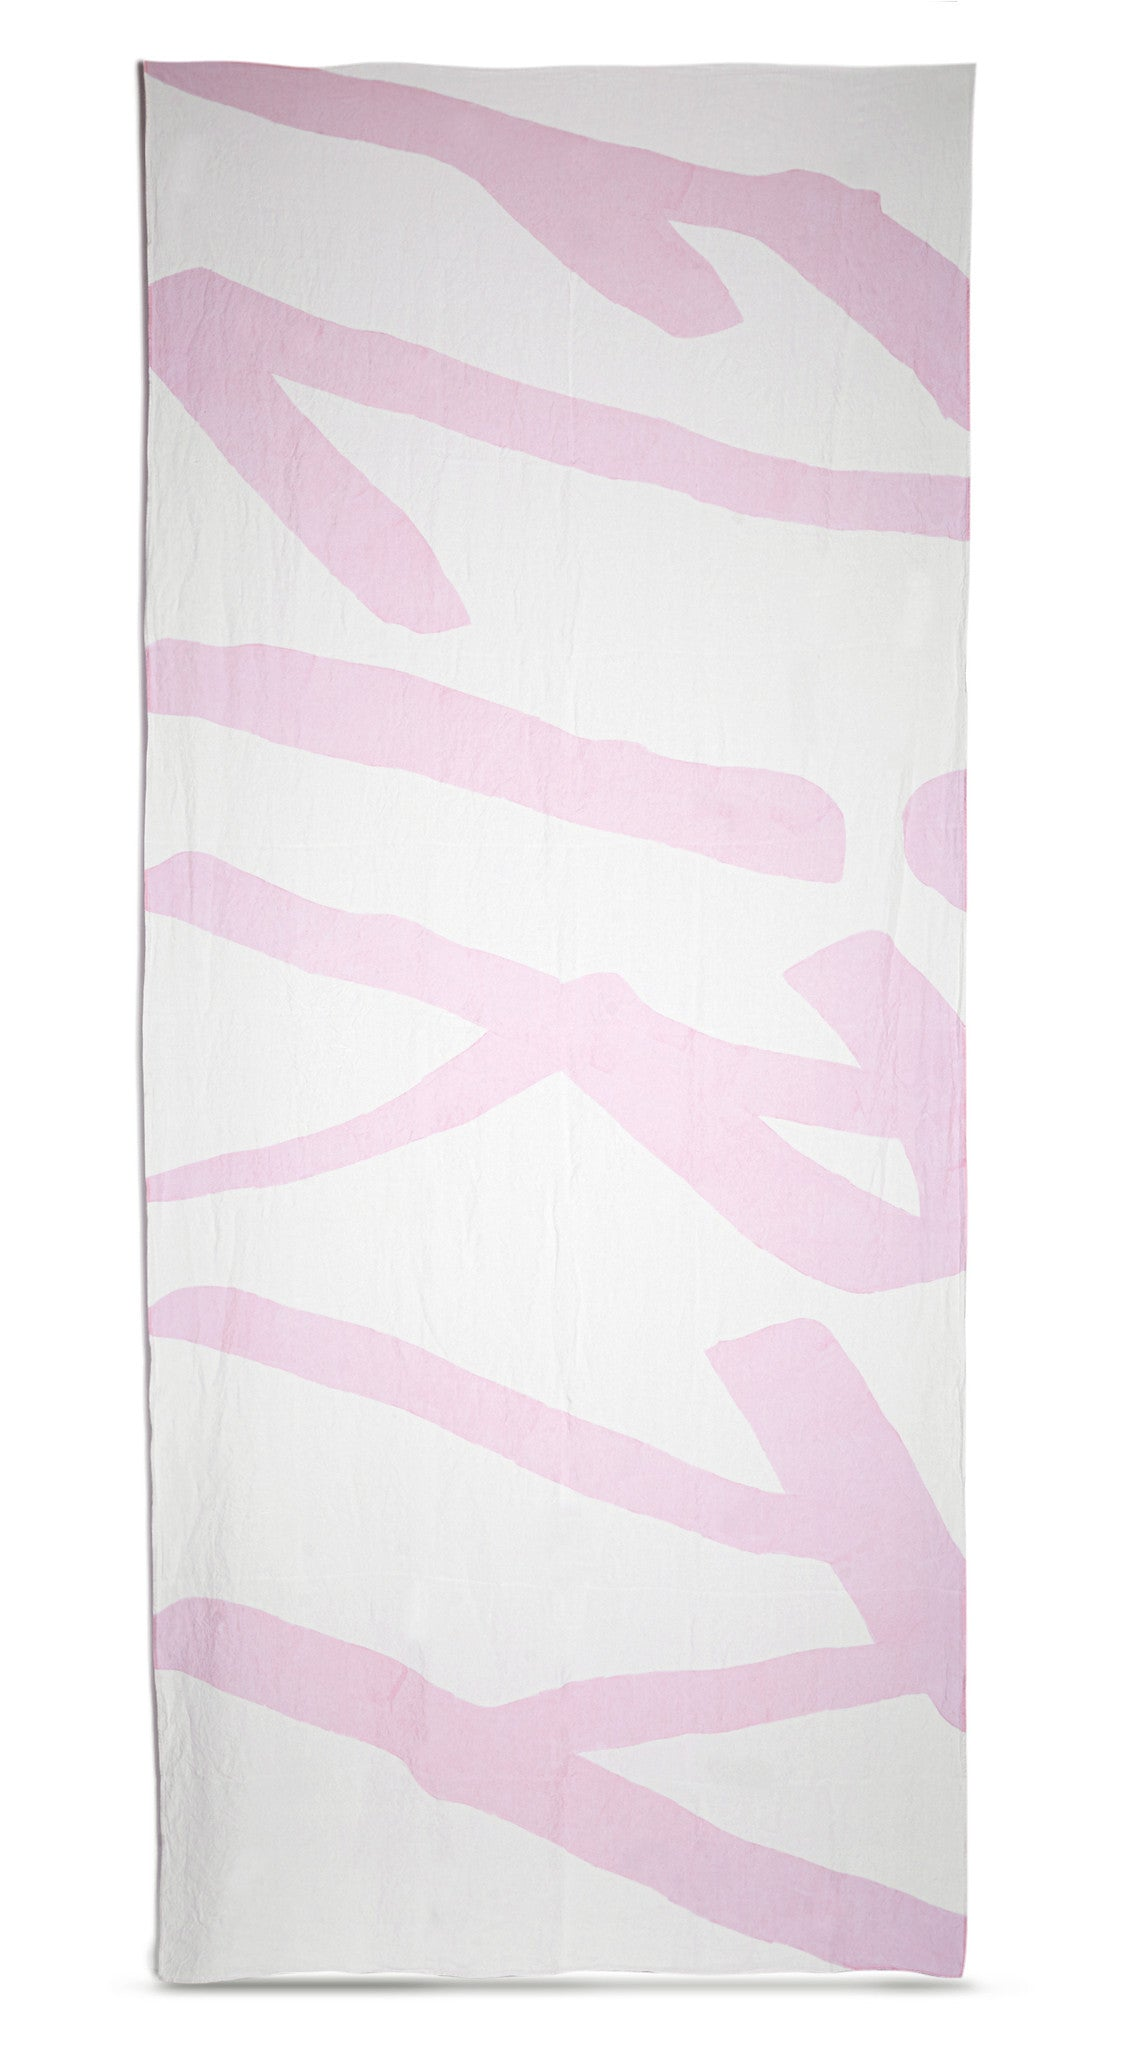 Flirty Linen Tablecloth in Petal Pink